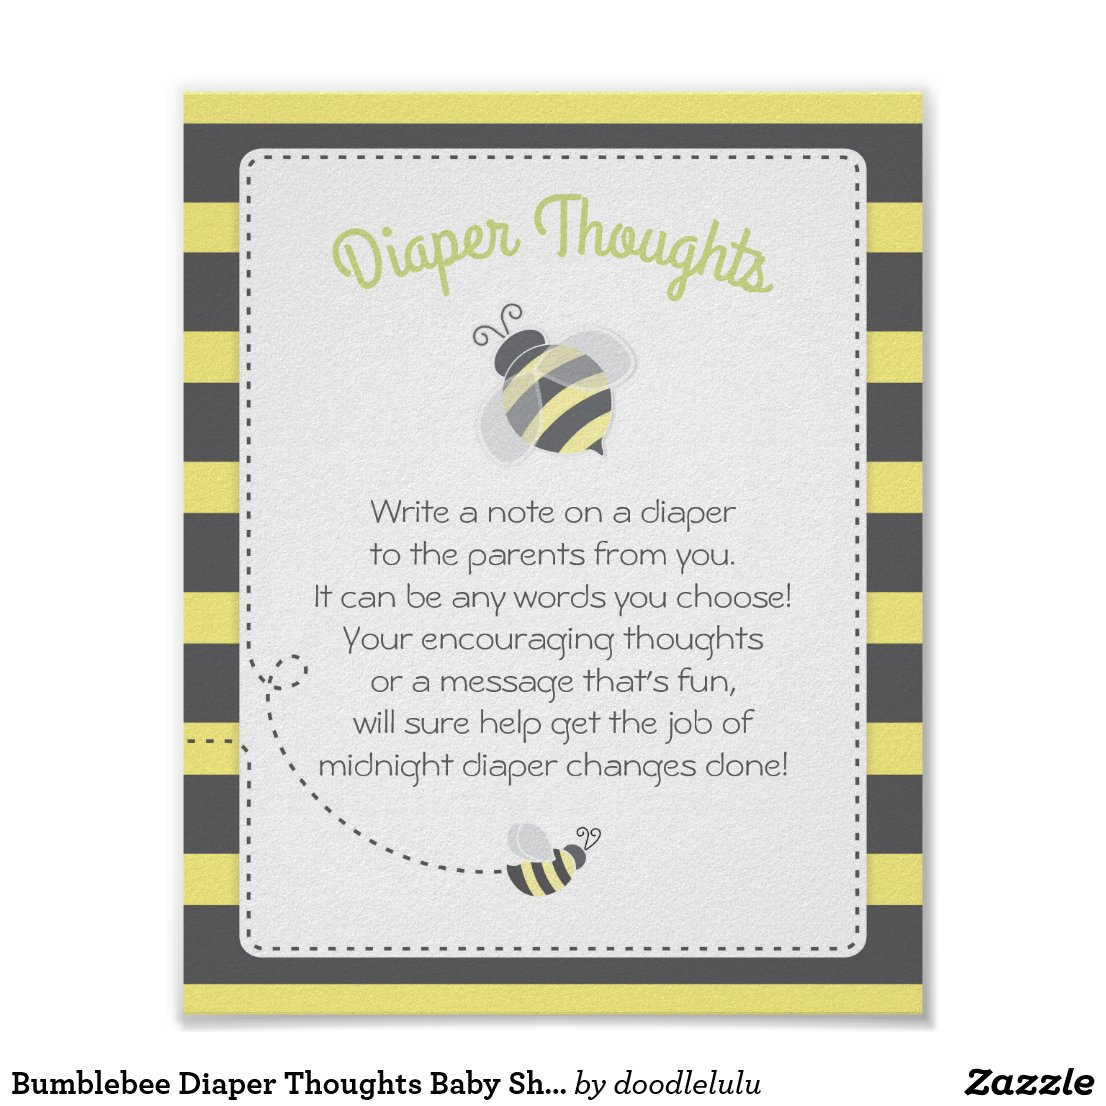 Bumblebee Diaper Thoughts Baby Shower Game Sign